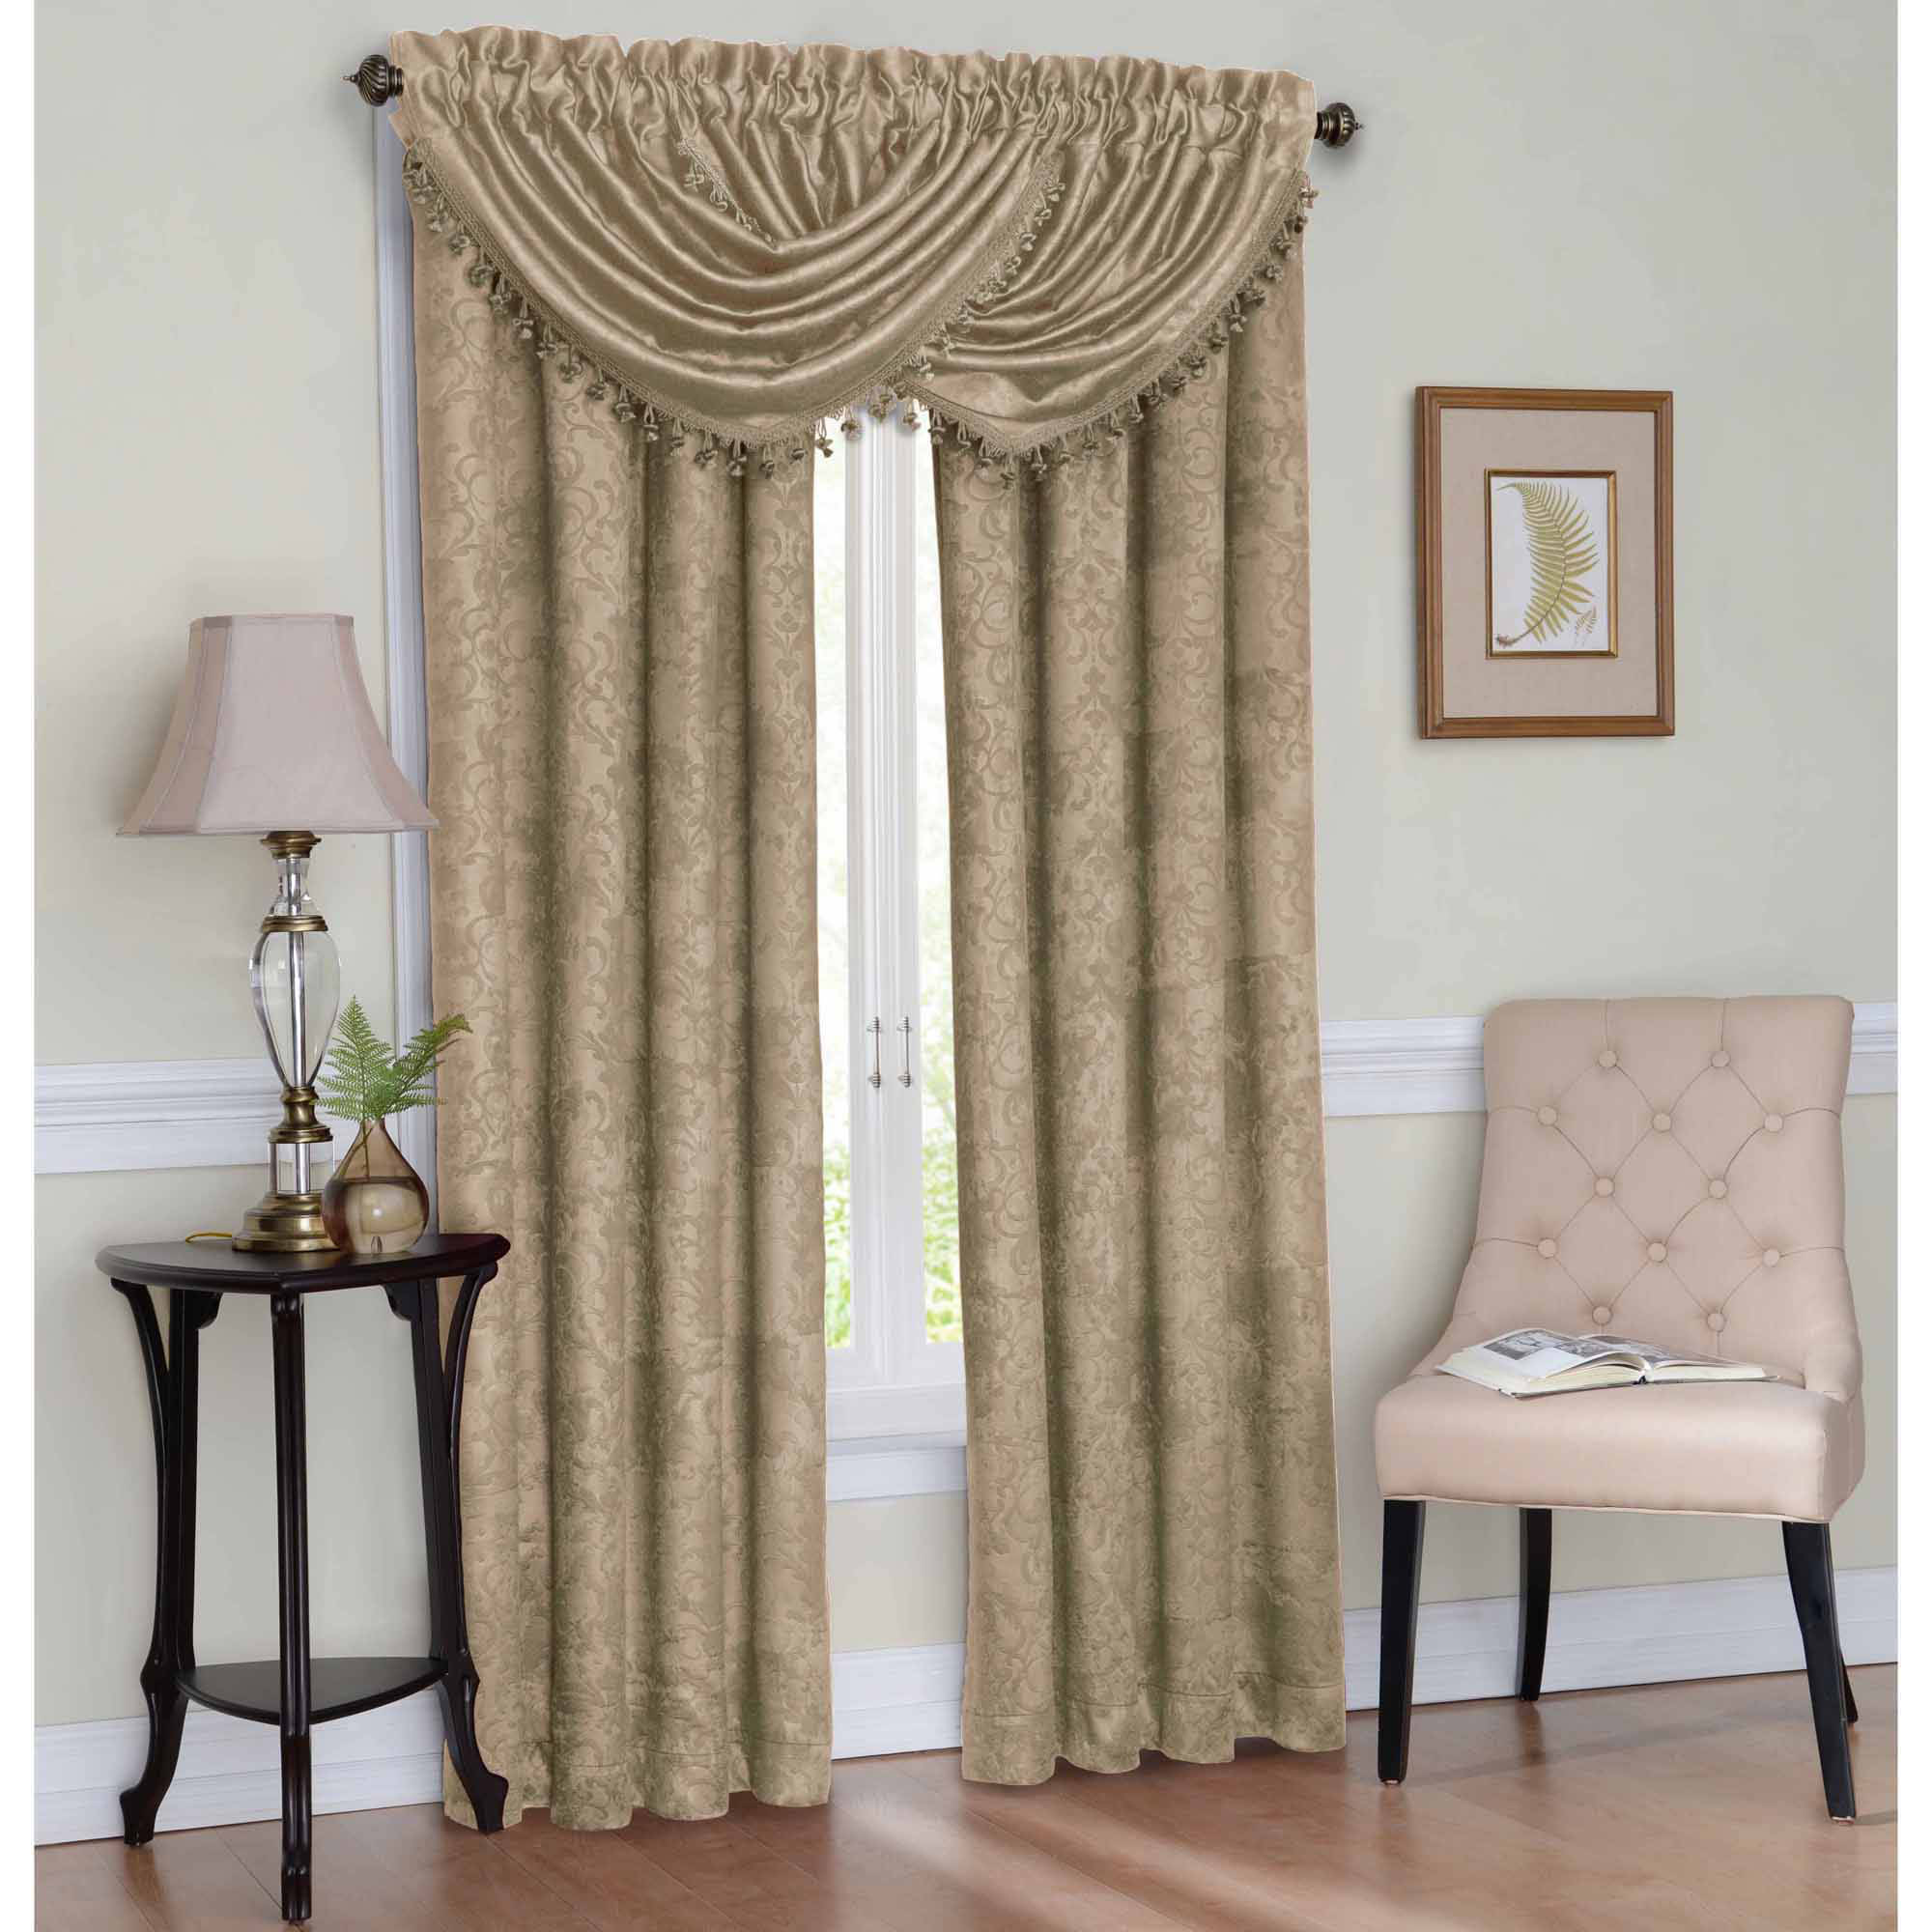 Celeste Blackout Curtain Panel